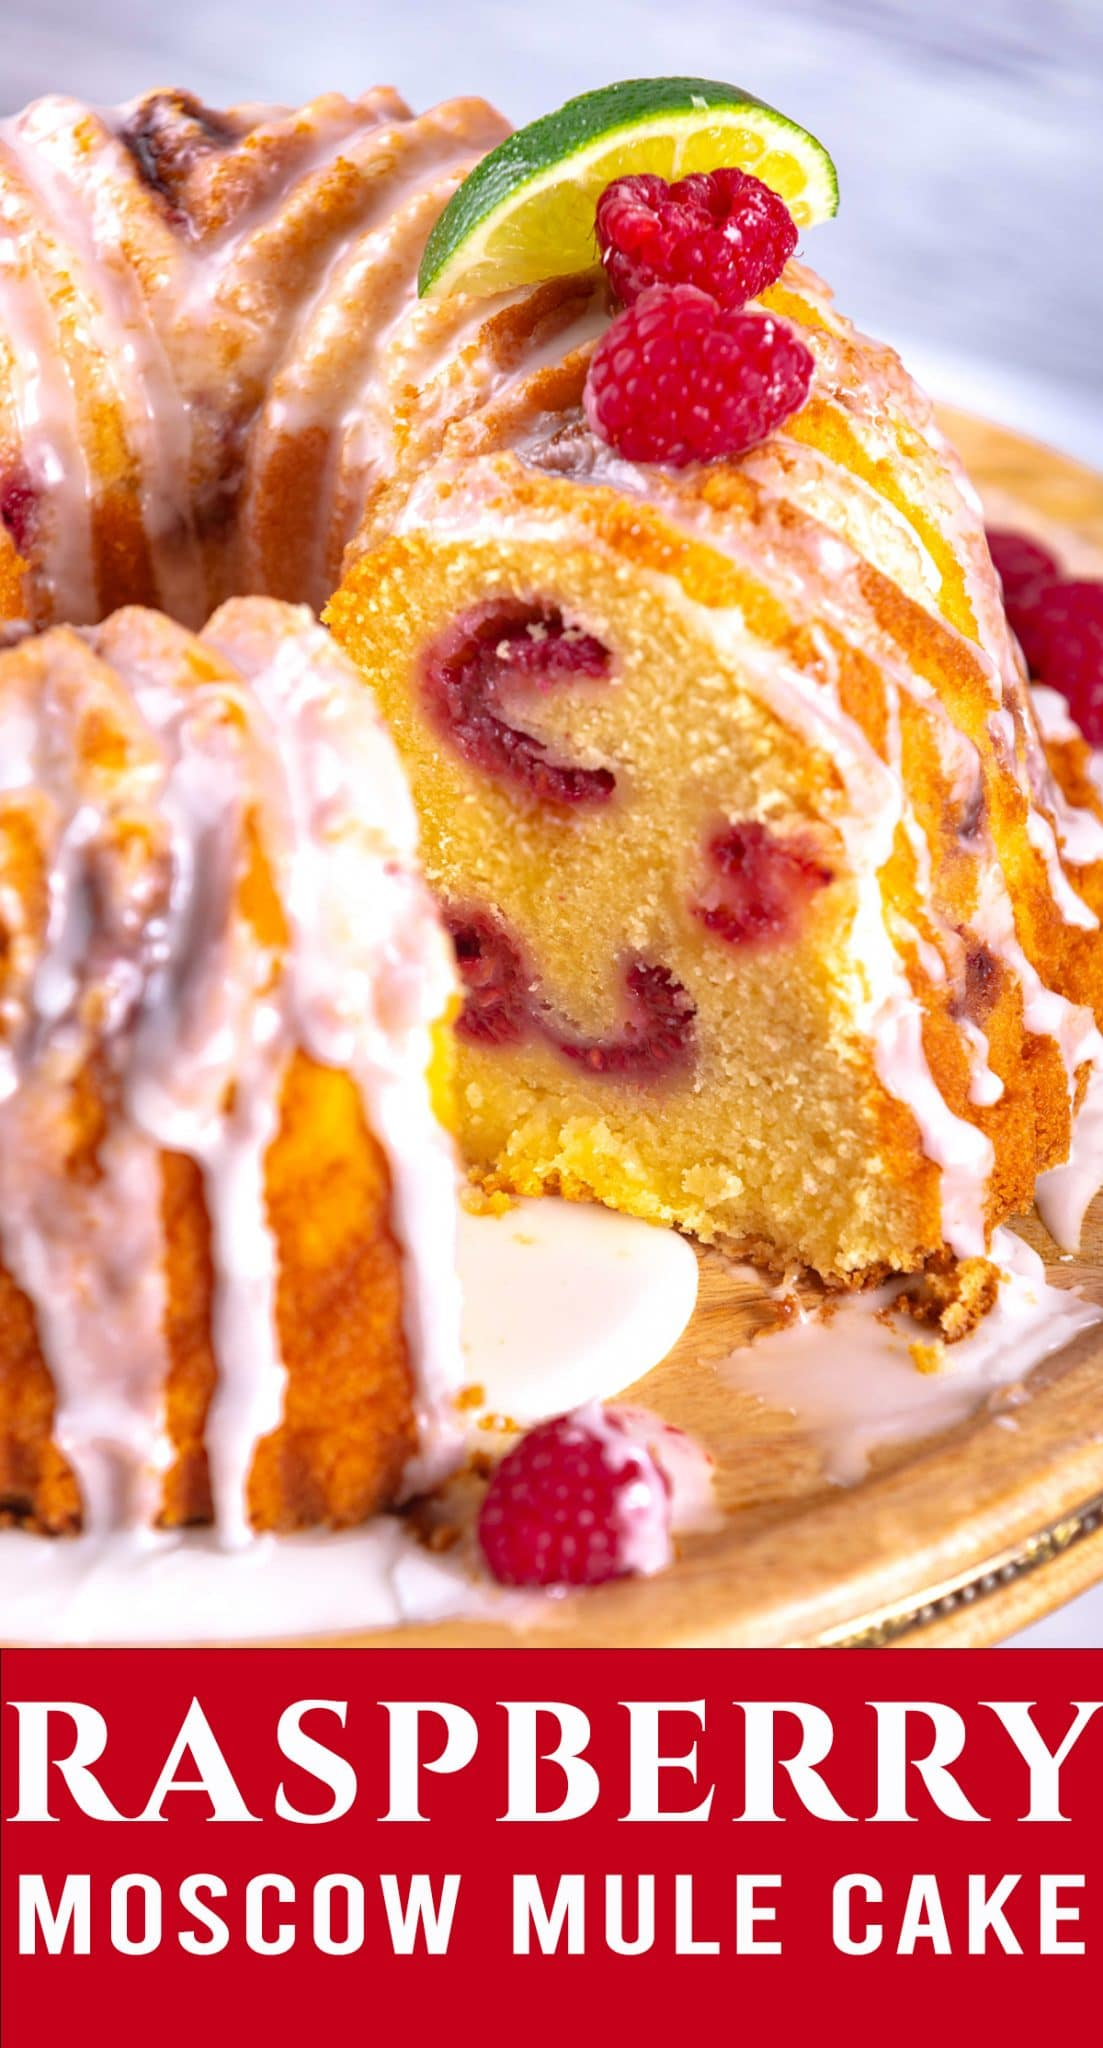 A deliciously rich pound cake, this glazed Raspberry Moscow Mule Cake makes a gorgeous presentation in a bundt cake shape. via @thebestcakerecipes